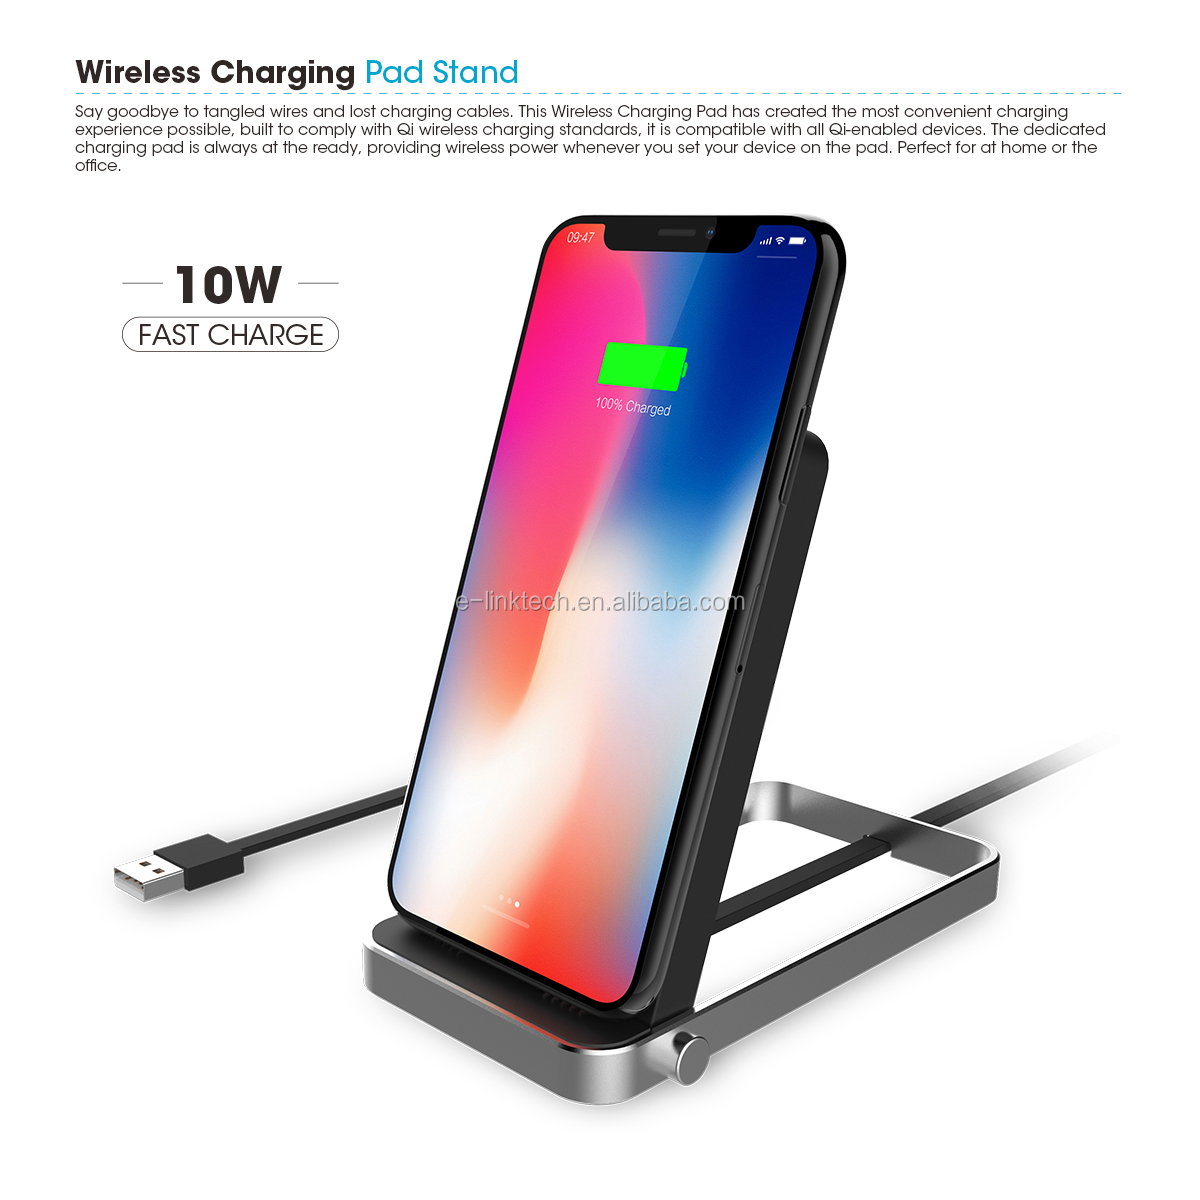 NEW Mobile Phone Charger Pad Wireless Fast QI Wireless Charger